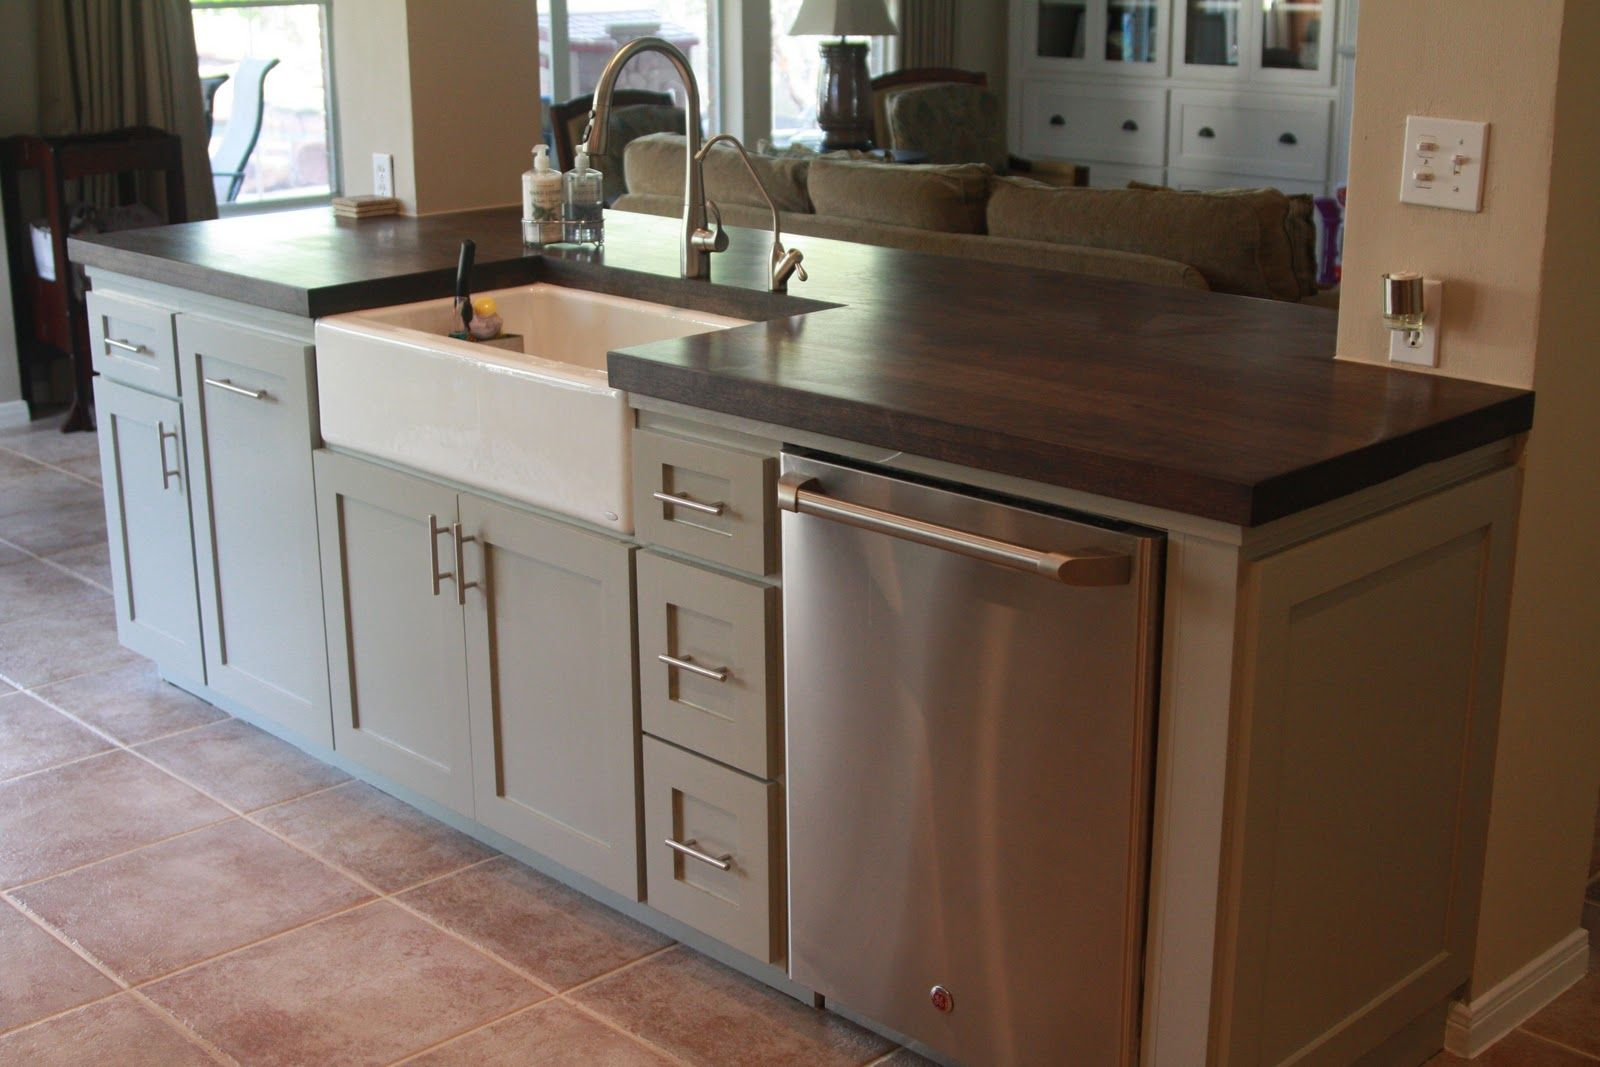 Wonderful Pictures Of Kitchen Islands With Sinks #7: 10 Best Images About For The Home On Kitchen Sinks Islands And Ladder